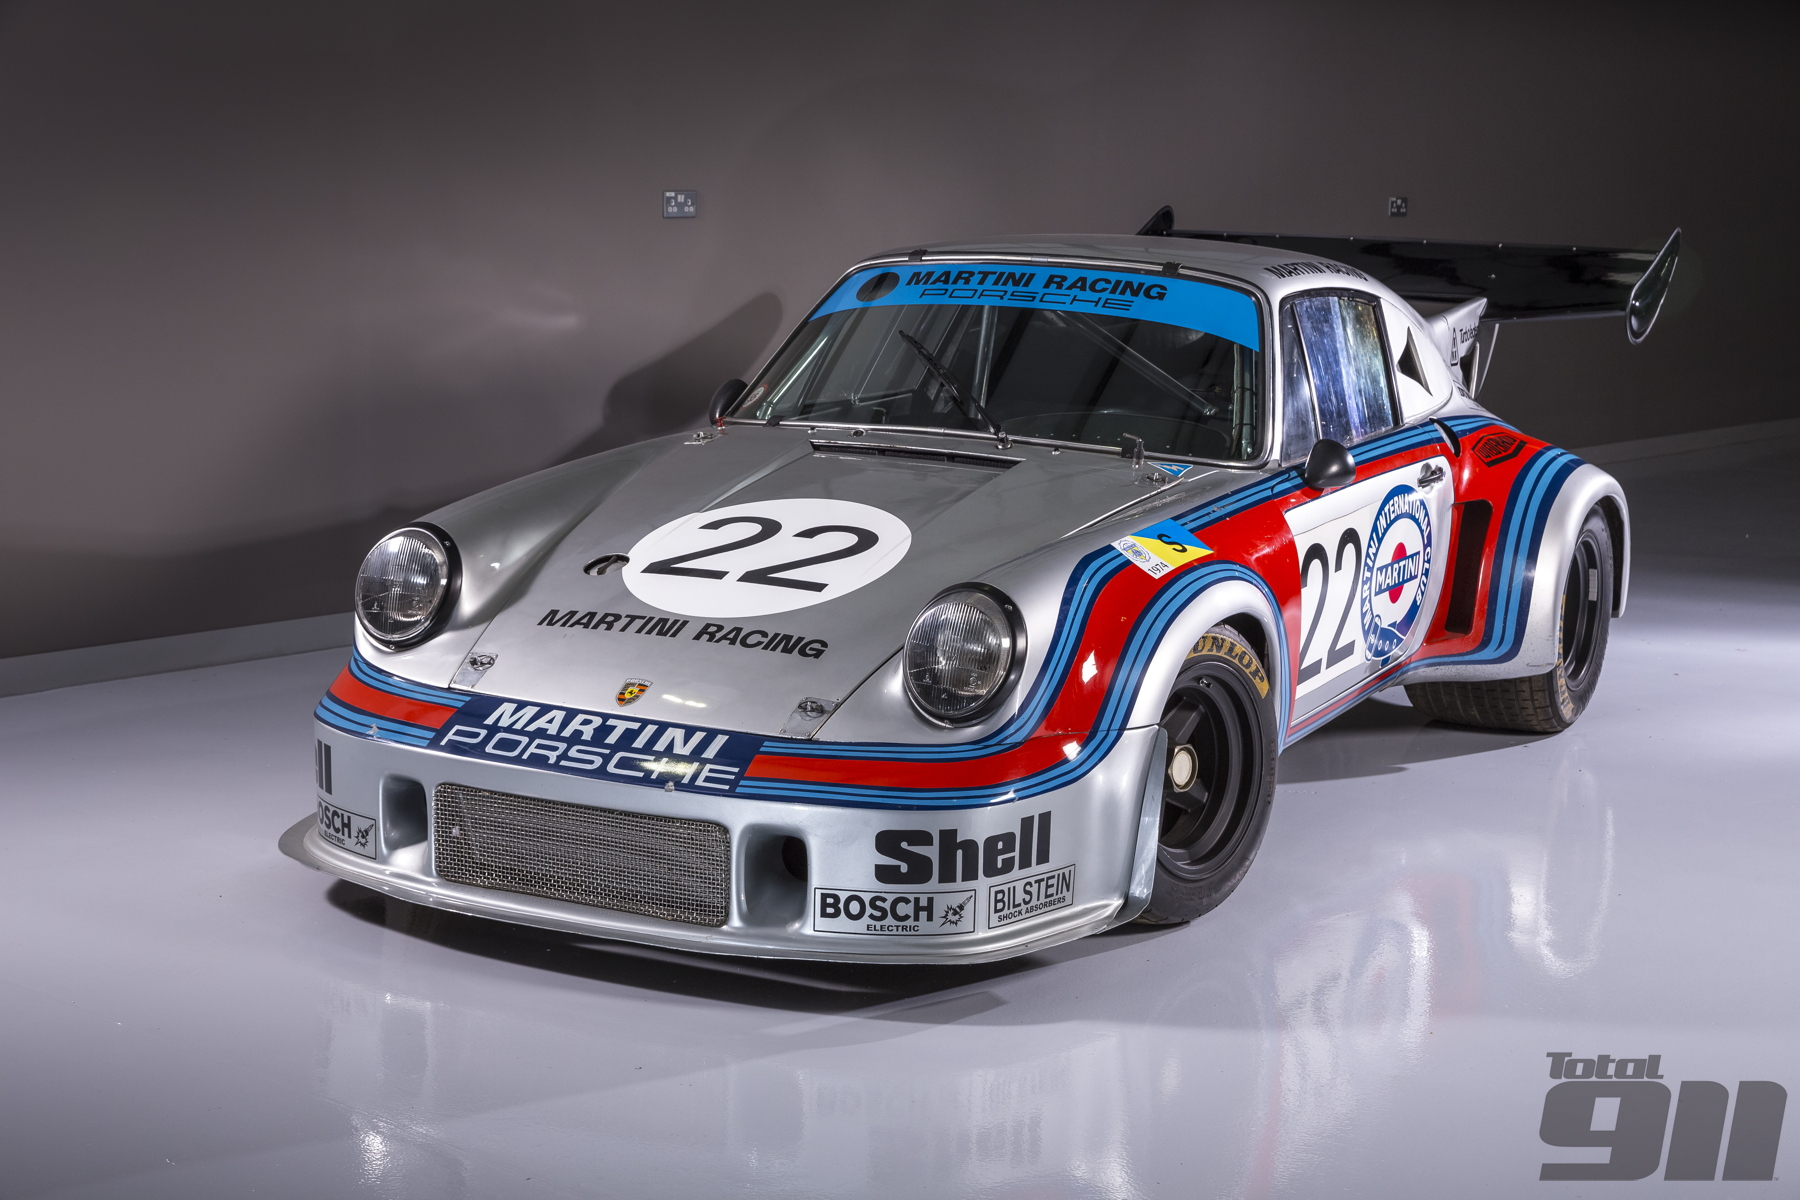 Born out of Porsche's Can-Am experience, we get up close and personal with the 1974 Porsche 911 Carrera RSR Turbo 2.1.